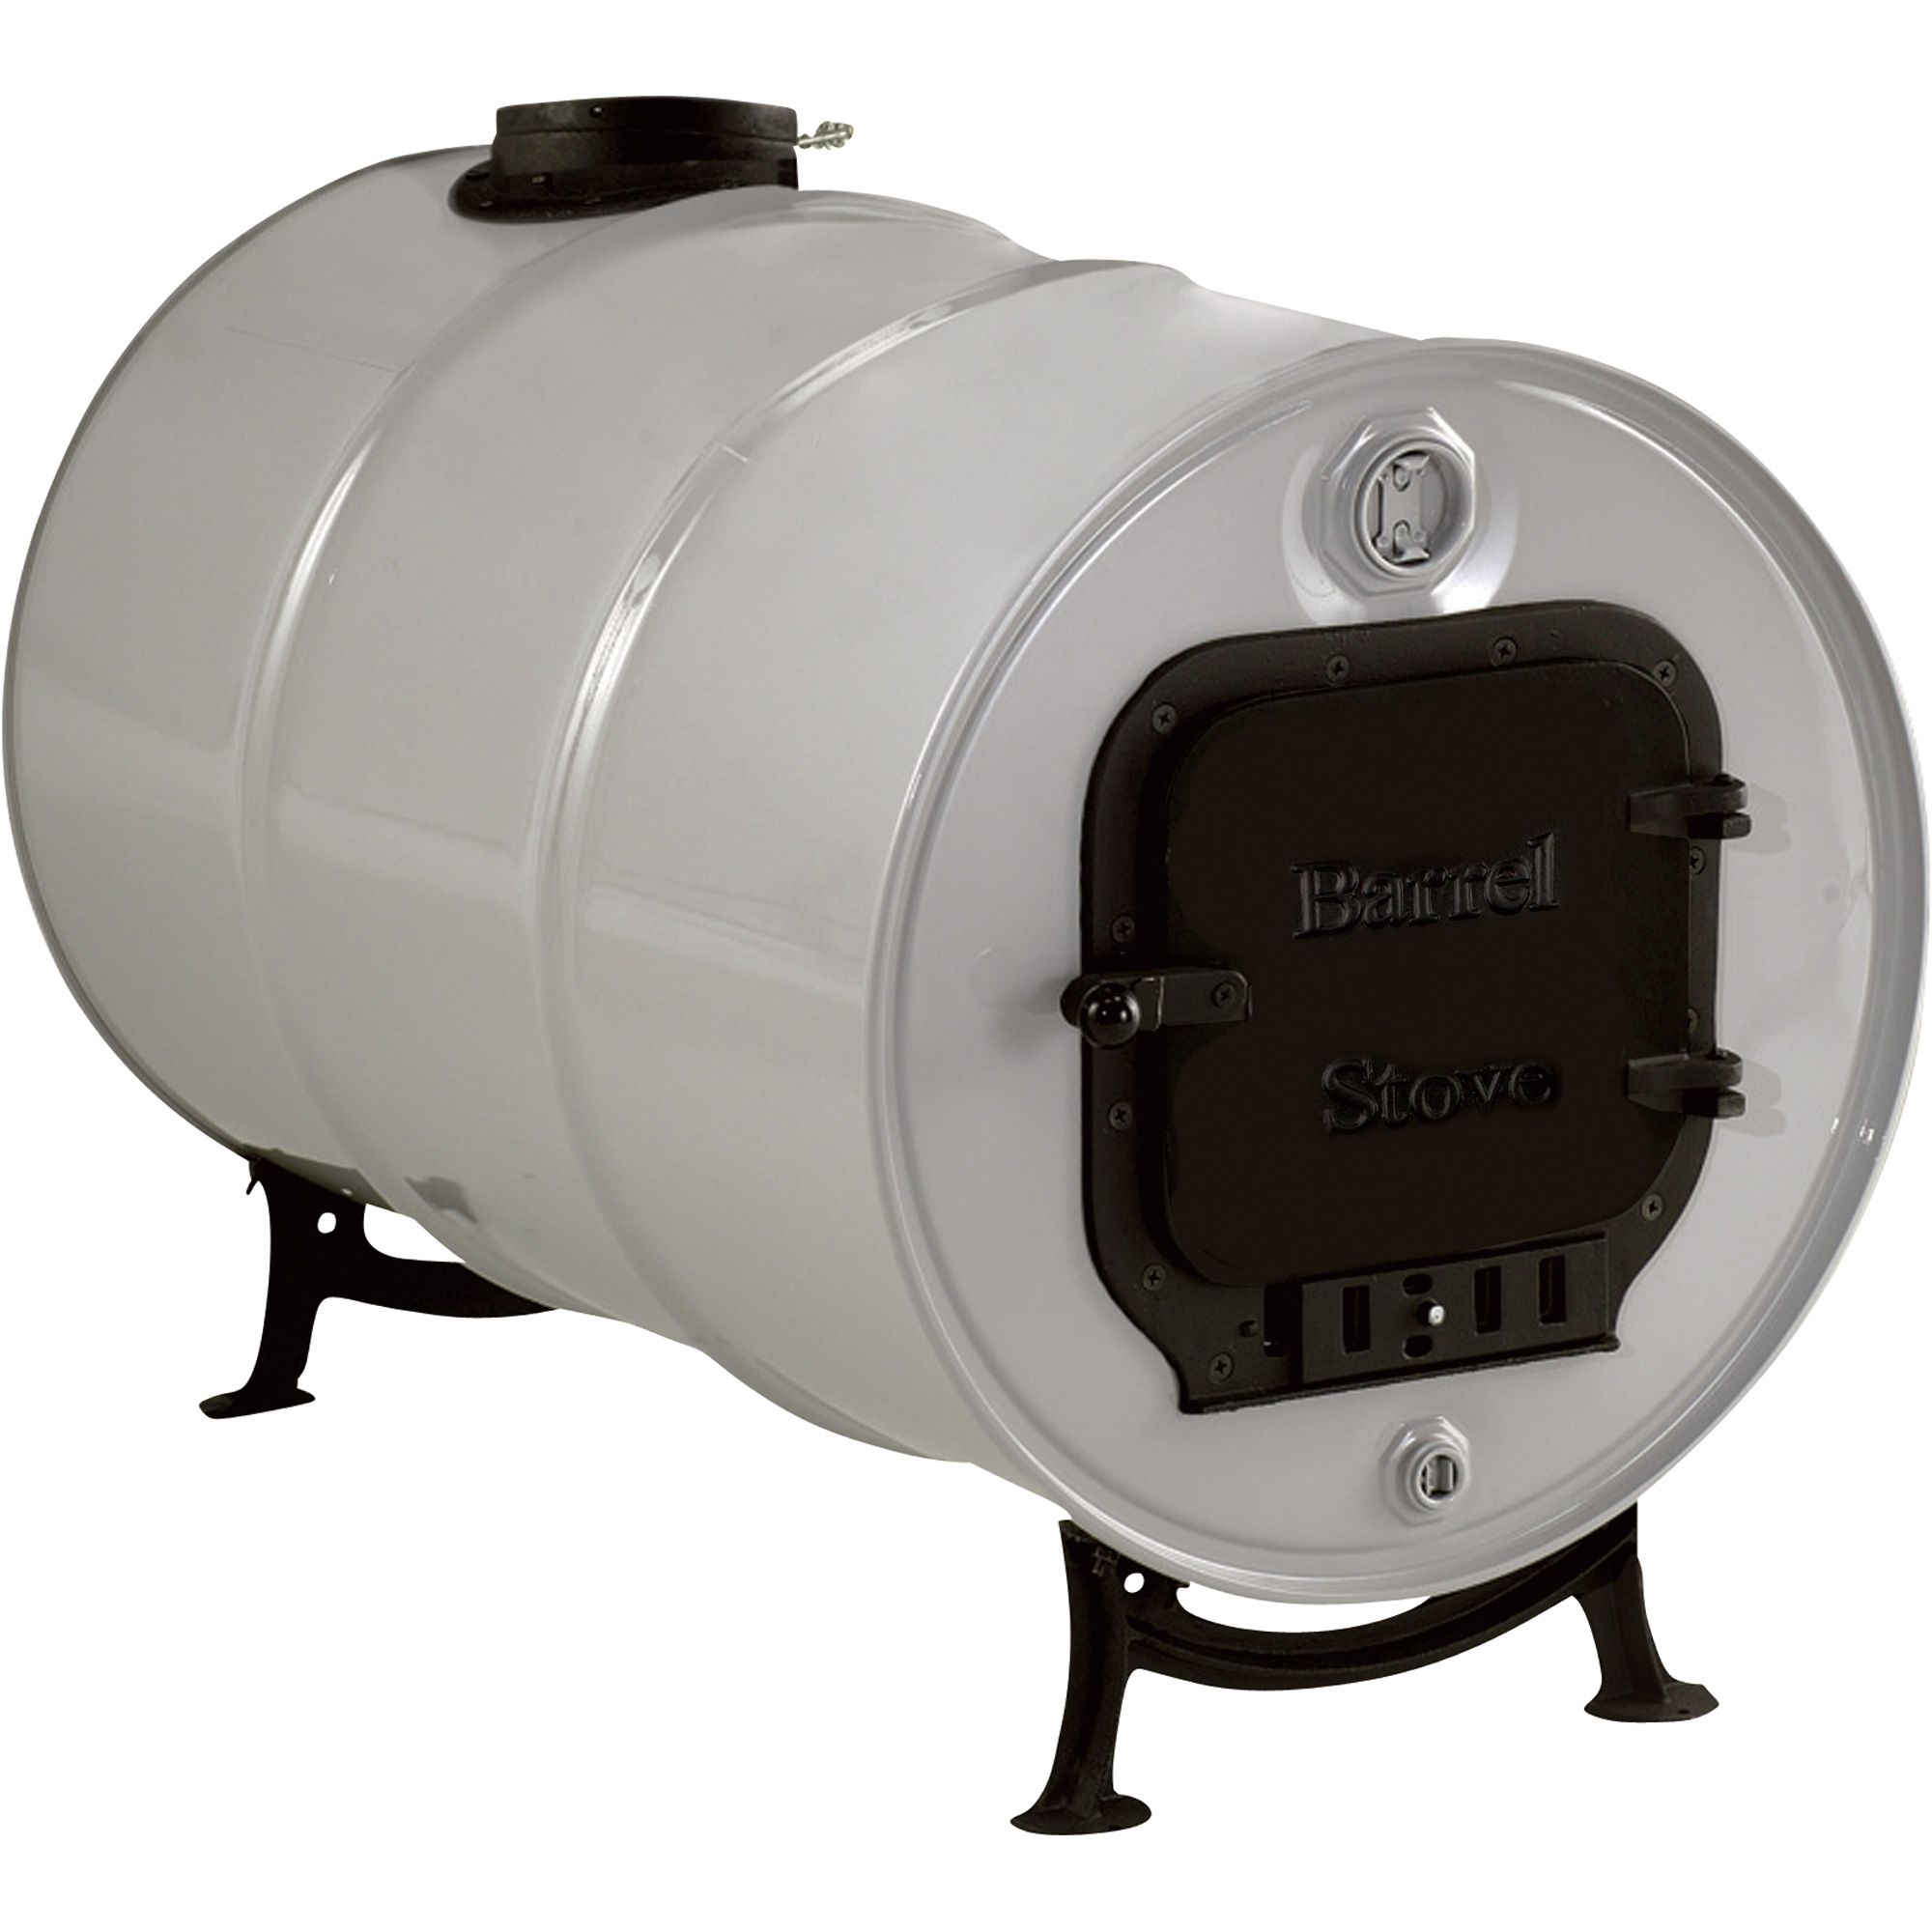 100 cast iron kit converts any 55 or 30 gallon drum into an